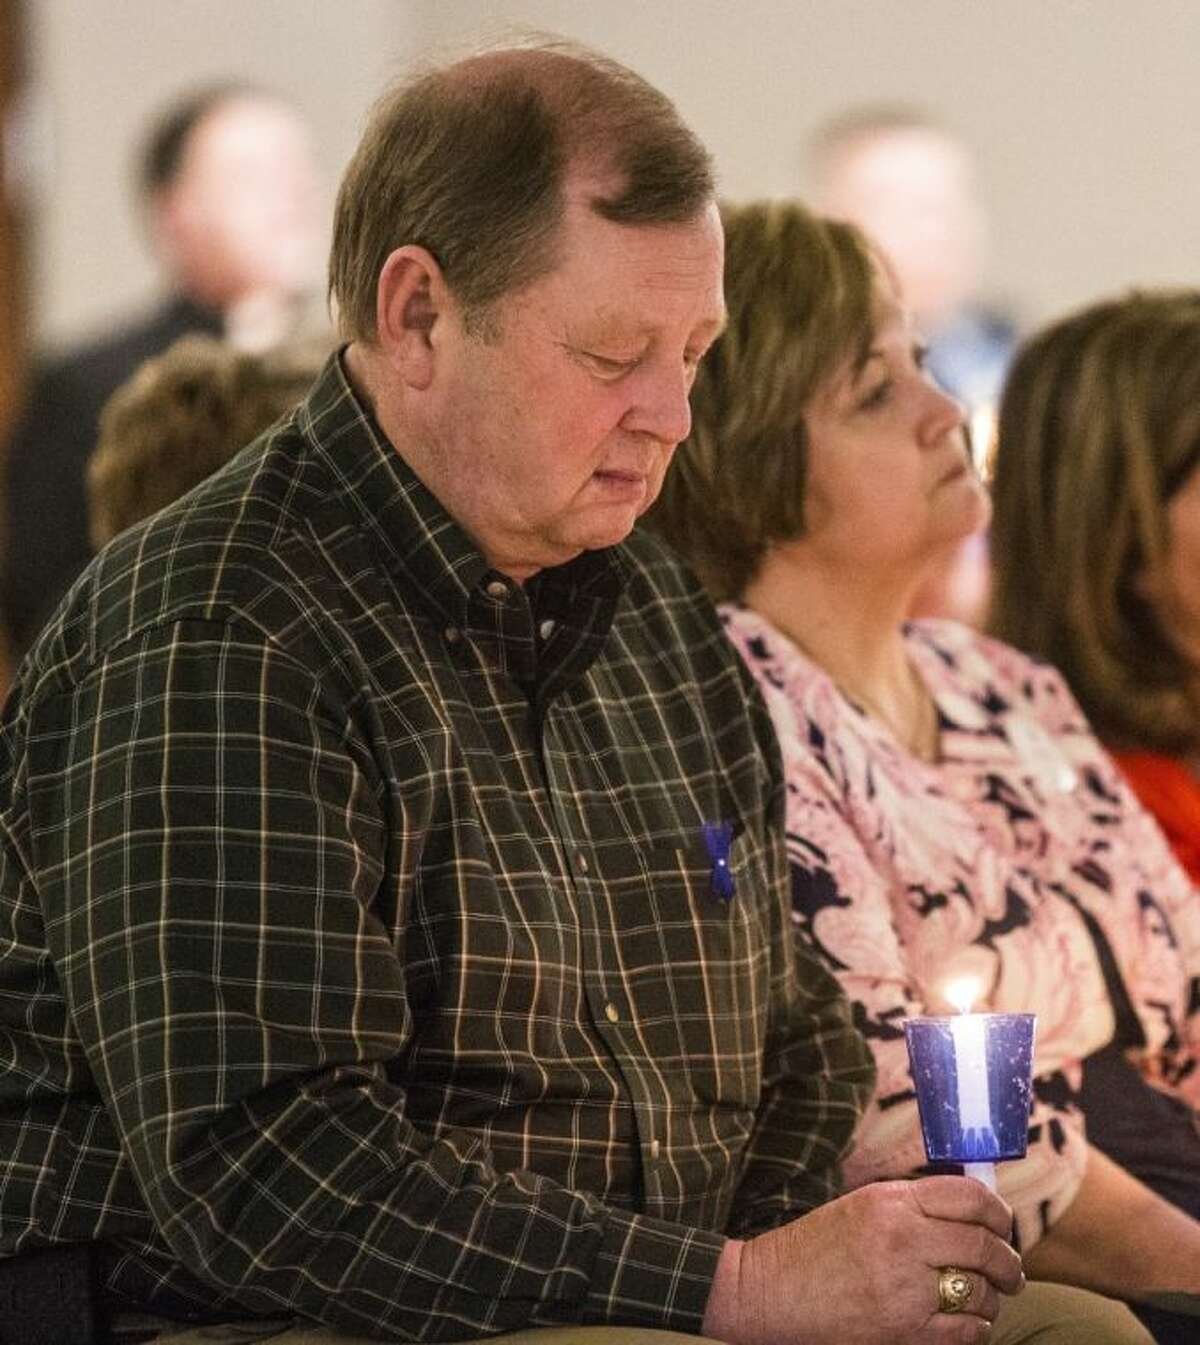 State Rep. John Otto is solemn during a candlelight vigil in recognition of Child Abuse Prevention Month and Crime Victims' Rights Week on April 8, 2014, at Liberty Center.